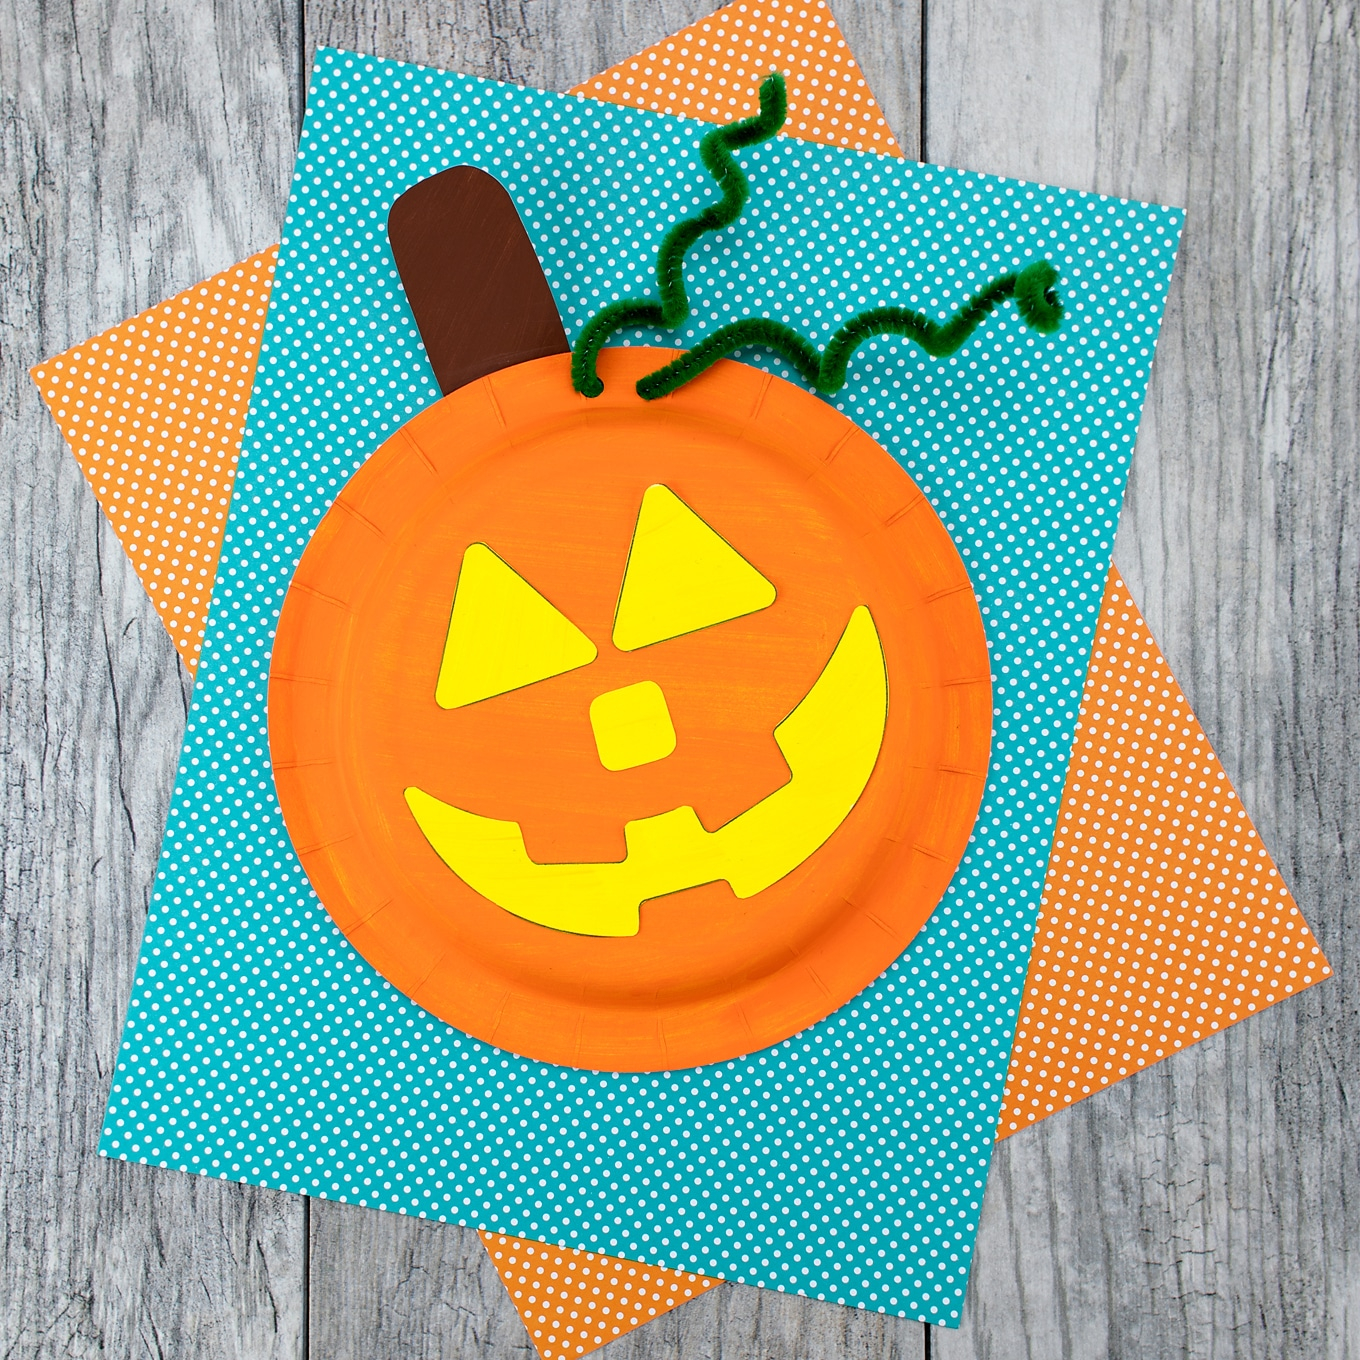 Creative ideas for pumpkin paper crafts design How To Make An Easy And Fun Paper Plate Pumpkin Craft